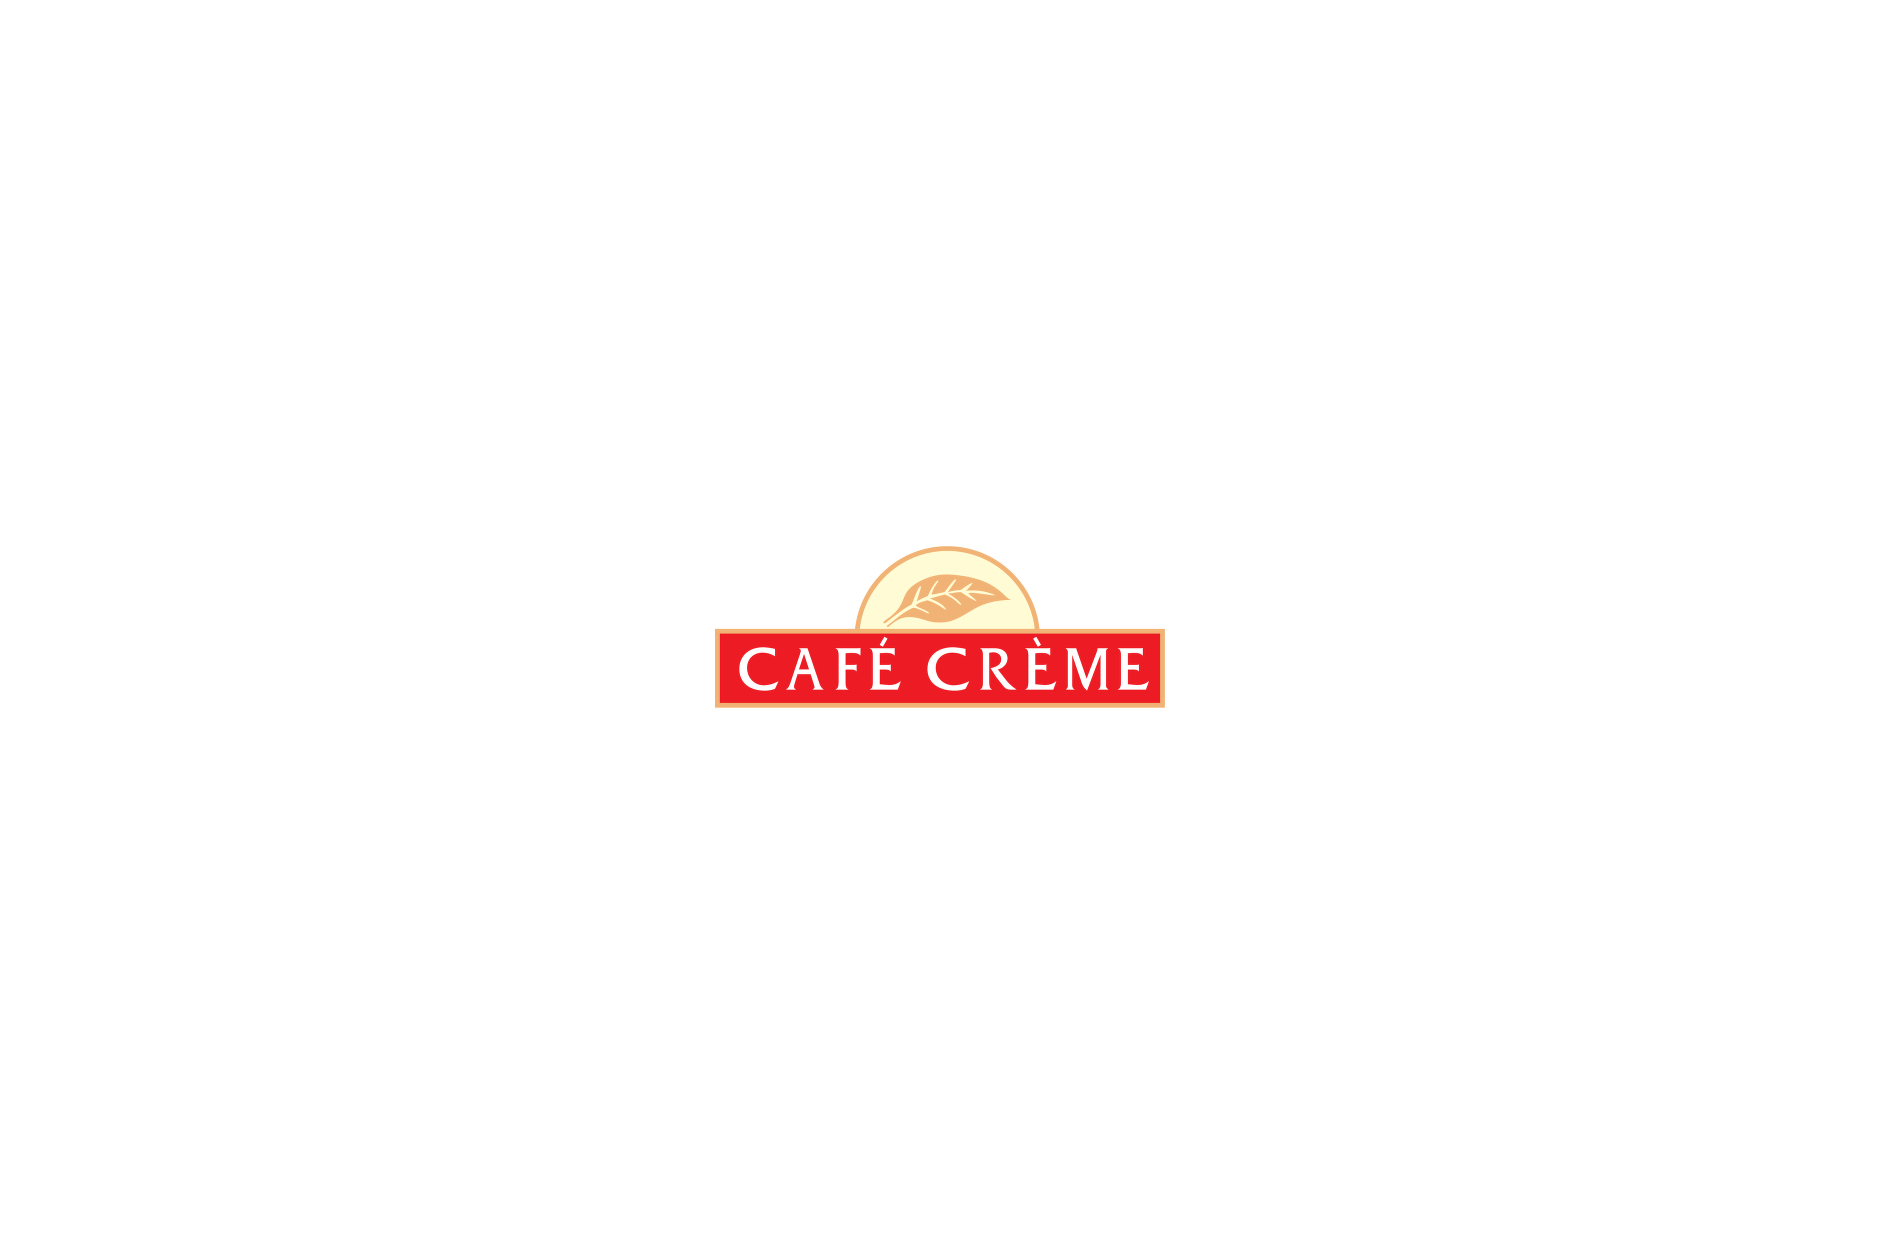 bancafe Logo photo - 1